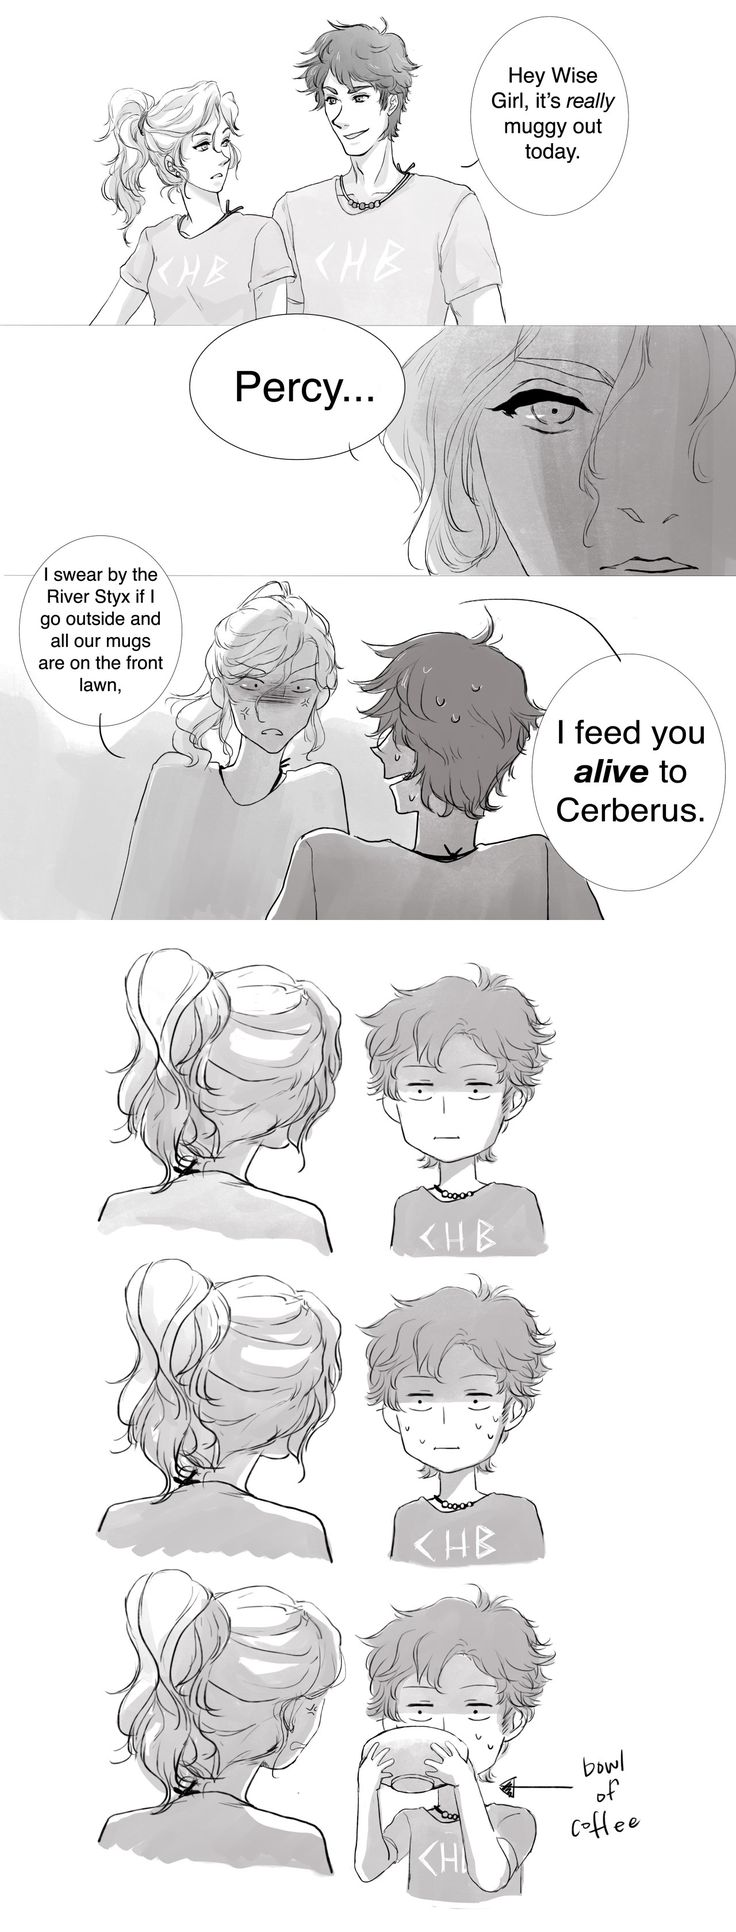 By far the best PJO fan comic I've ever seen XD